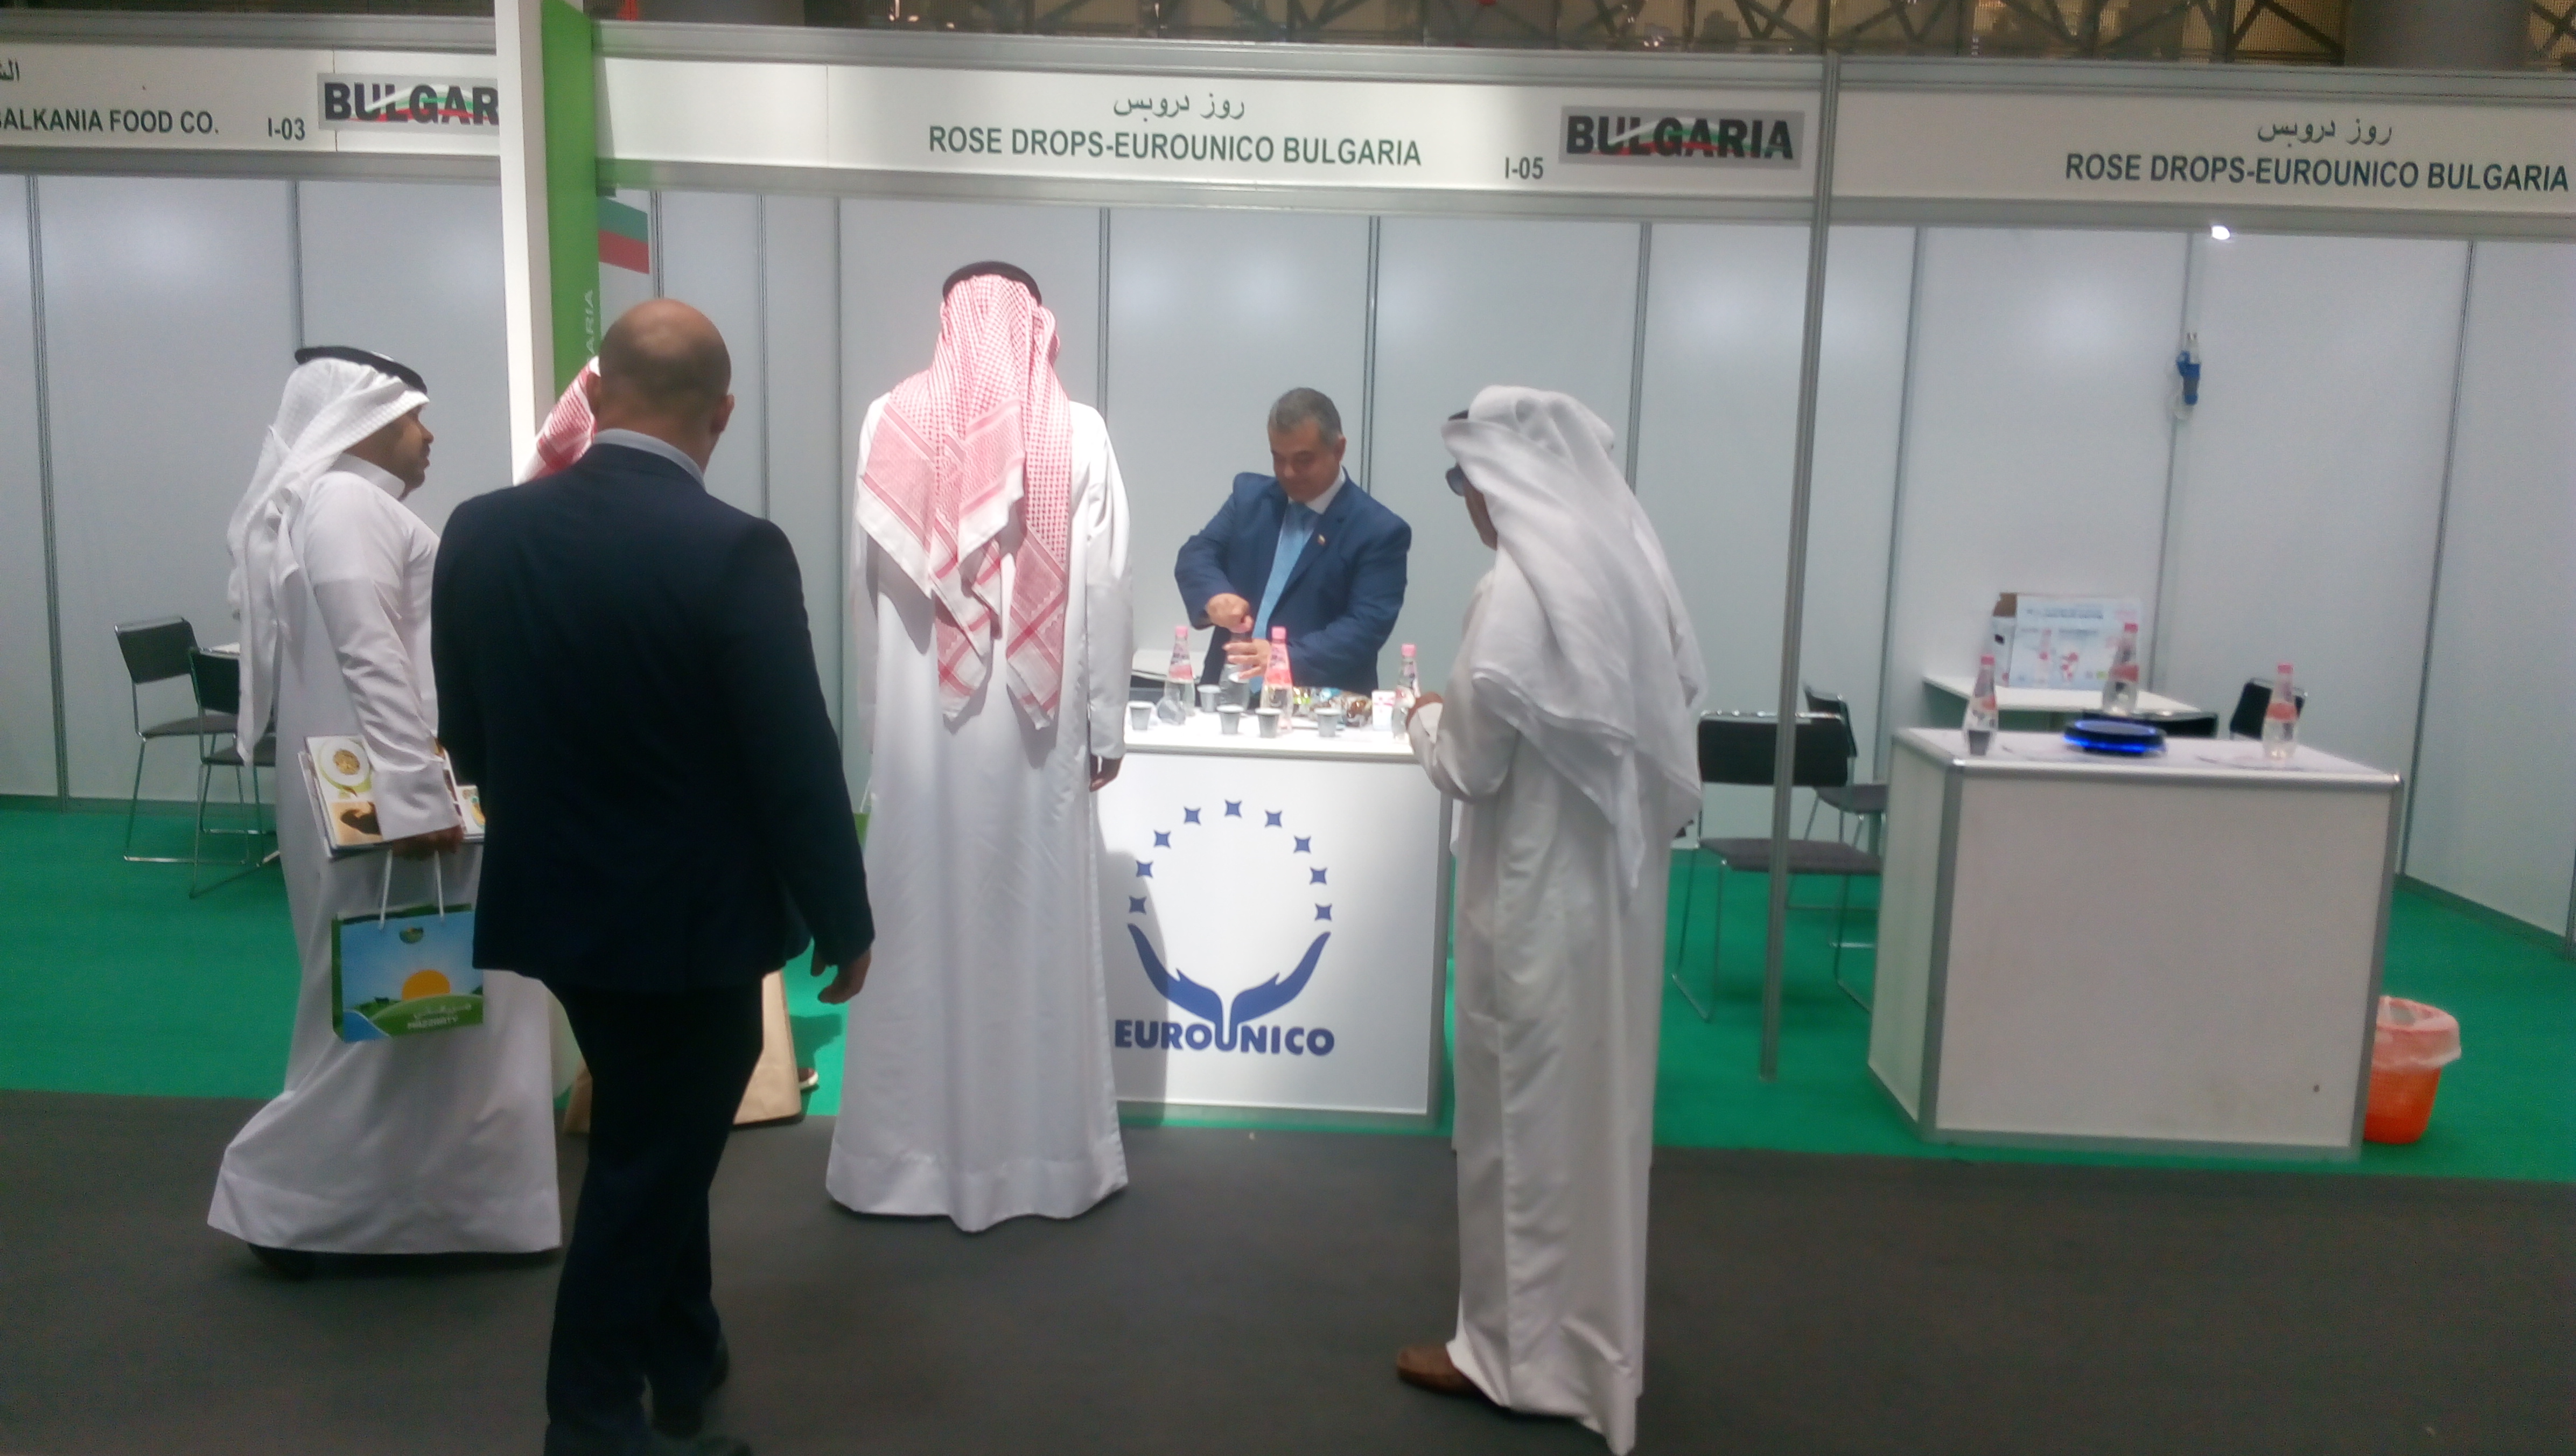 ROSE DROPS takes part in AGRITEQ 2018 at Doha Exhibition